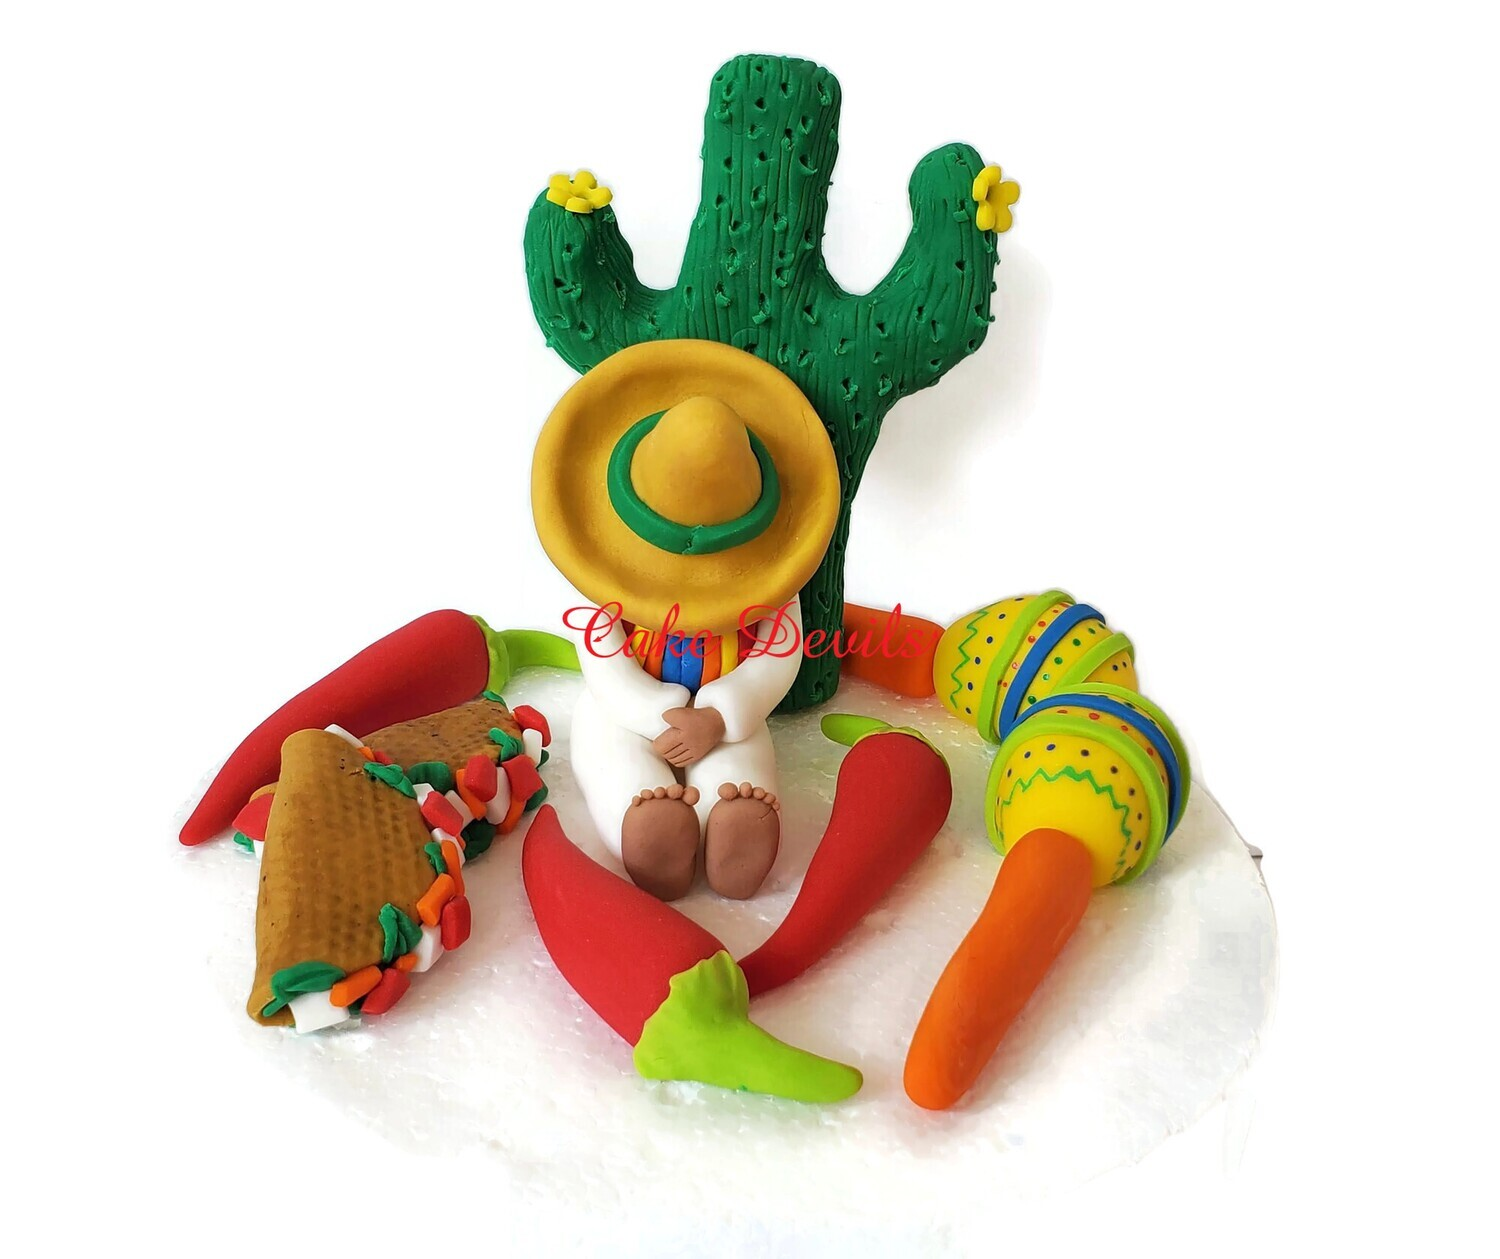 Fondant Mexican Fiesta Cake Toppers perfect for Cinco de Mayo or a Fiesta celebration!